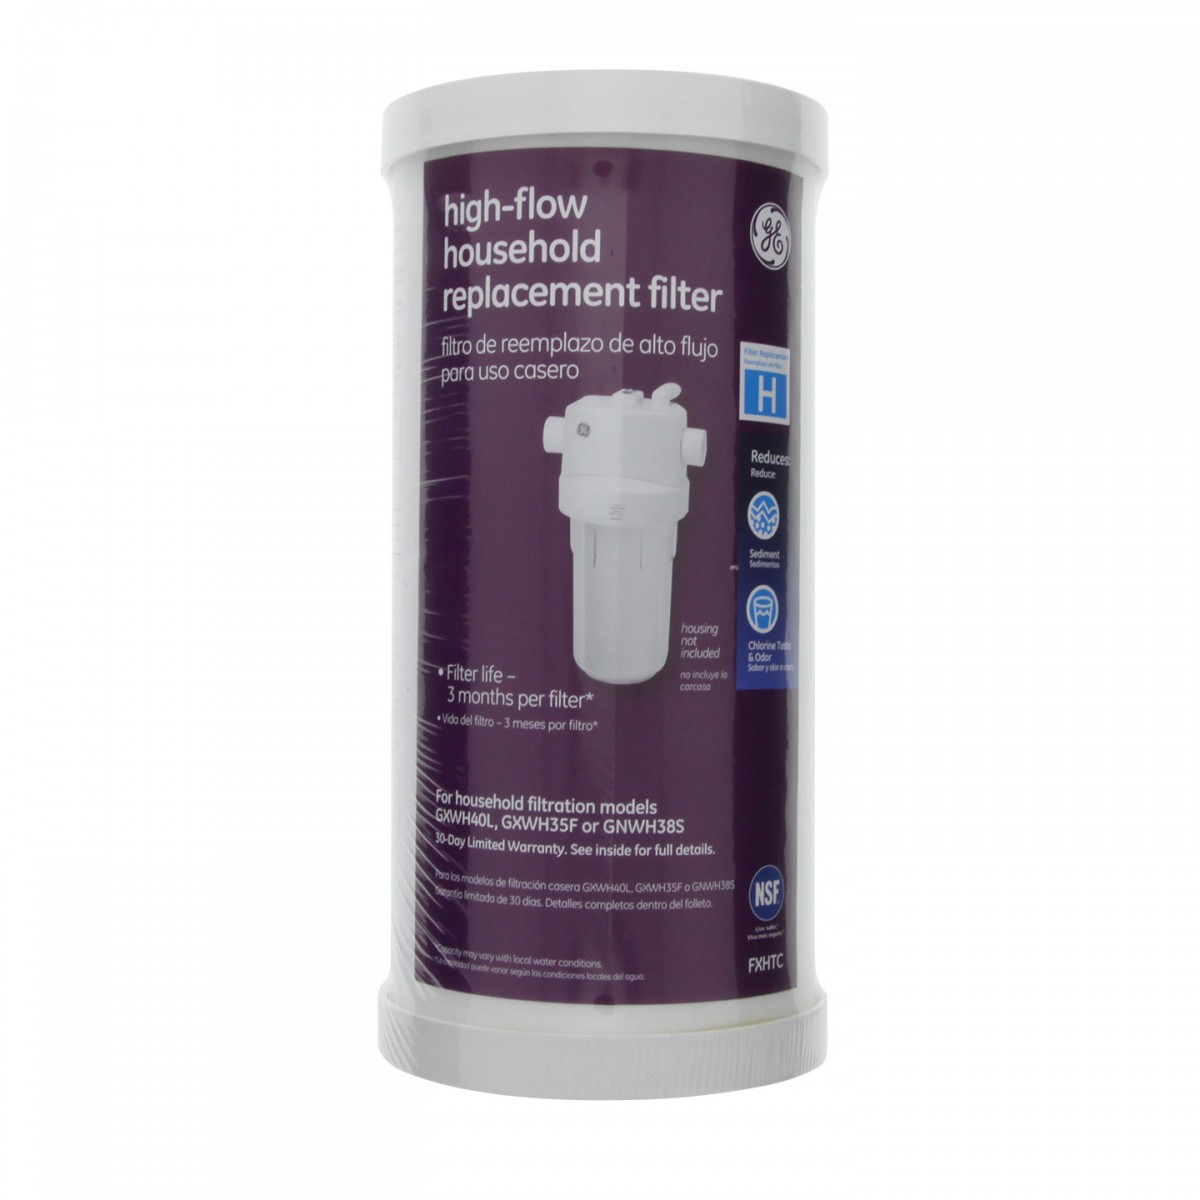 ge smartwater fxhtc whole house water filter. Black Bedroom Furniture Sets. Home Design Ideas